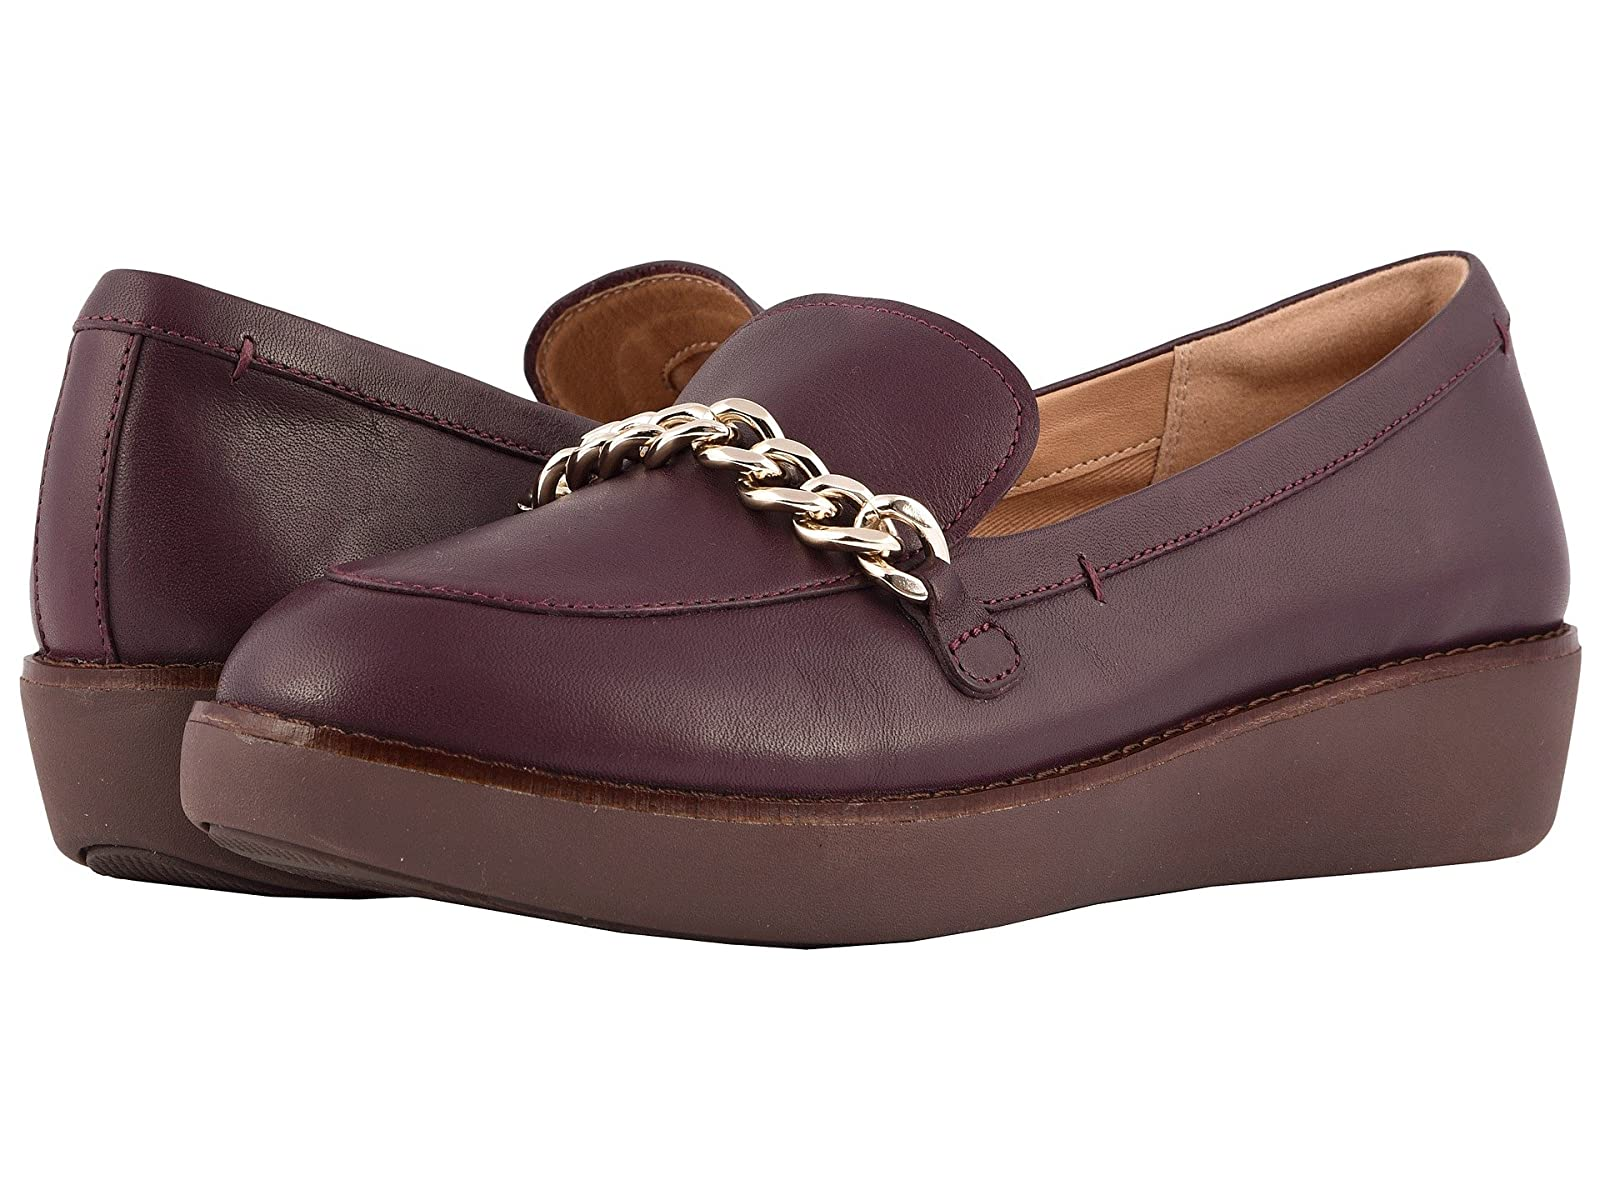 FitFlop Paige Chain MoccasinAtmospheric grades have affordable shoes